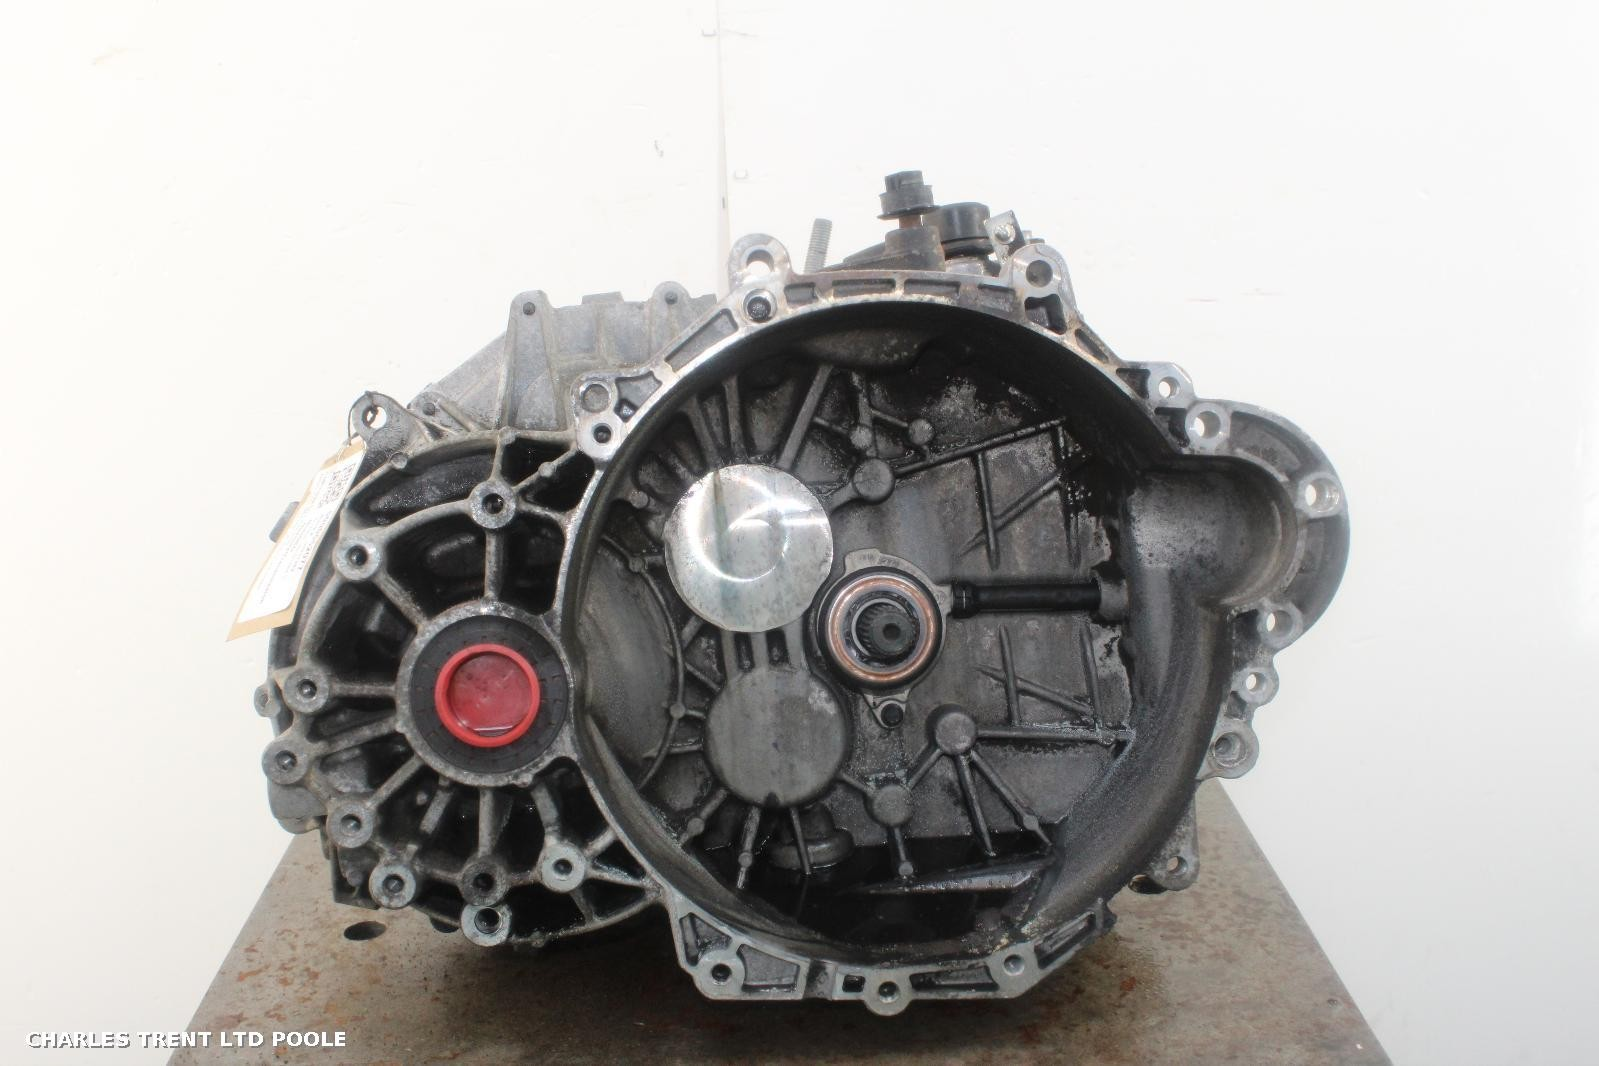 2009 - FORD - MONDEO - GEARBOXES / TRANSMISSIONS